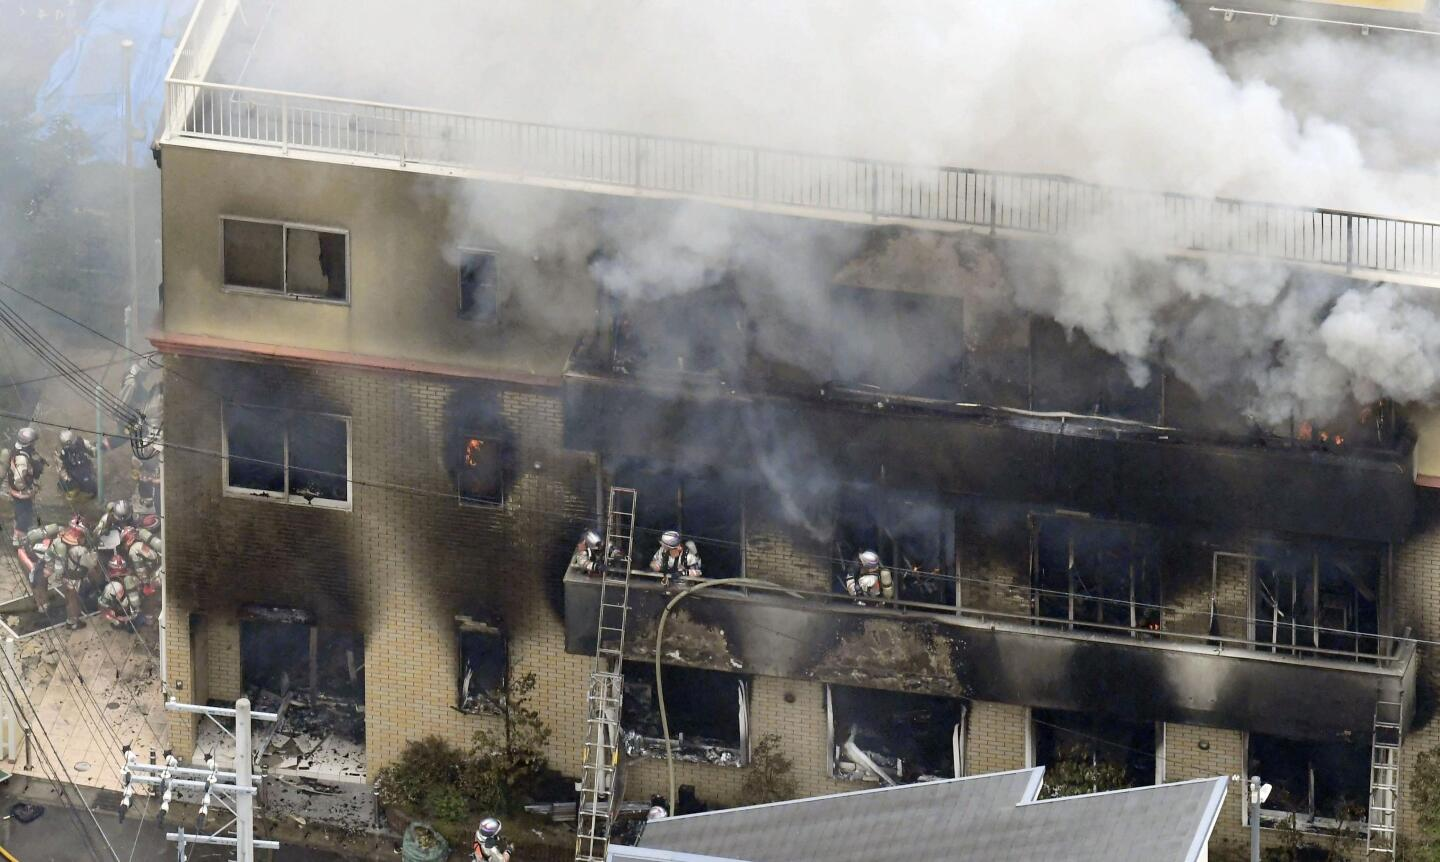 Firefighters respond to a building fire of Kyoto Animation in Kyoto, western Japan.